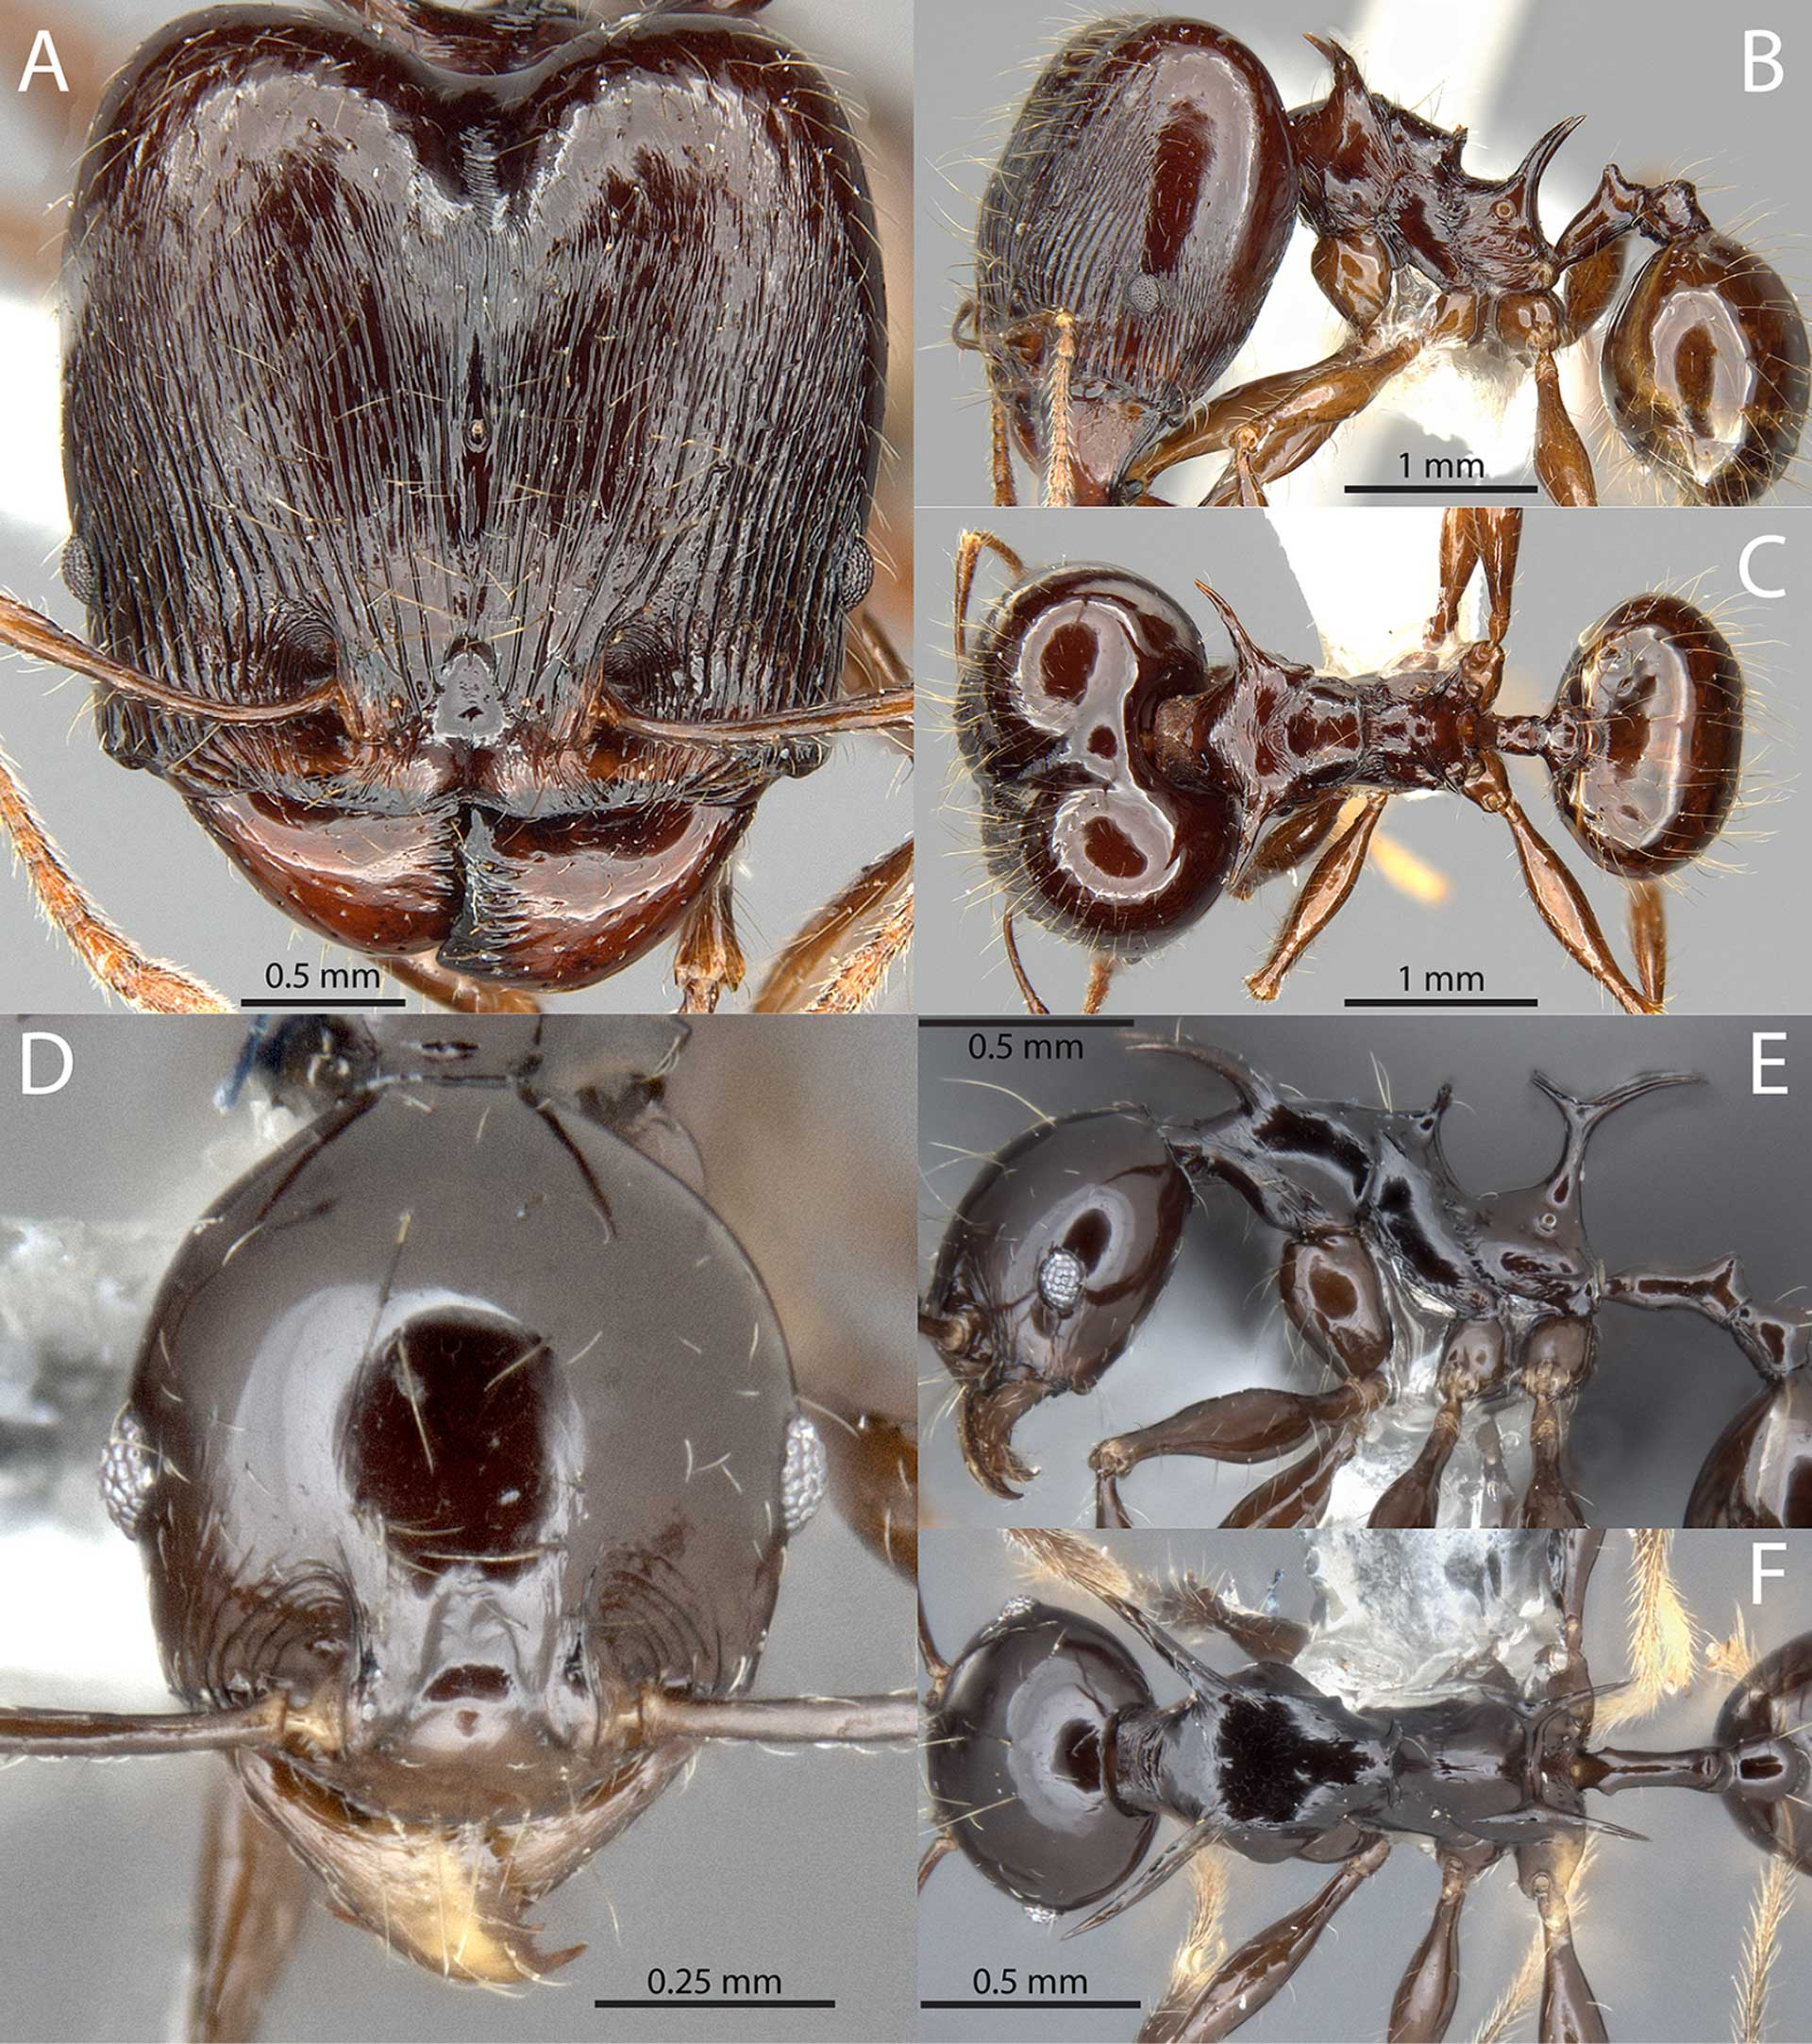 Four New Species of Ants Discovered – Two Named after Game of